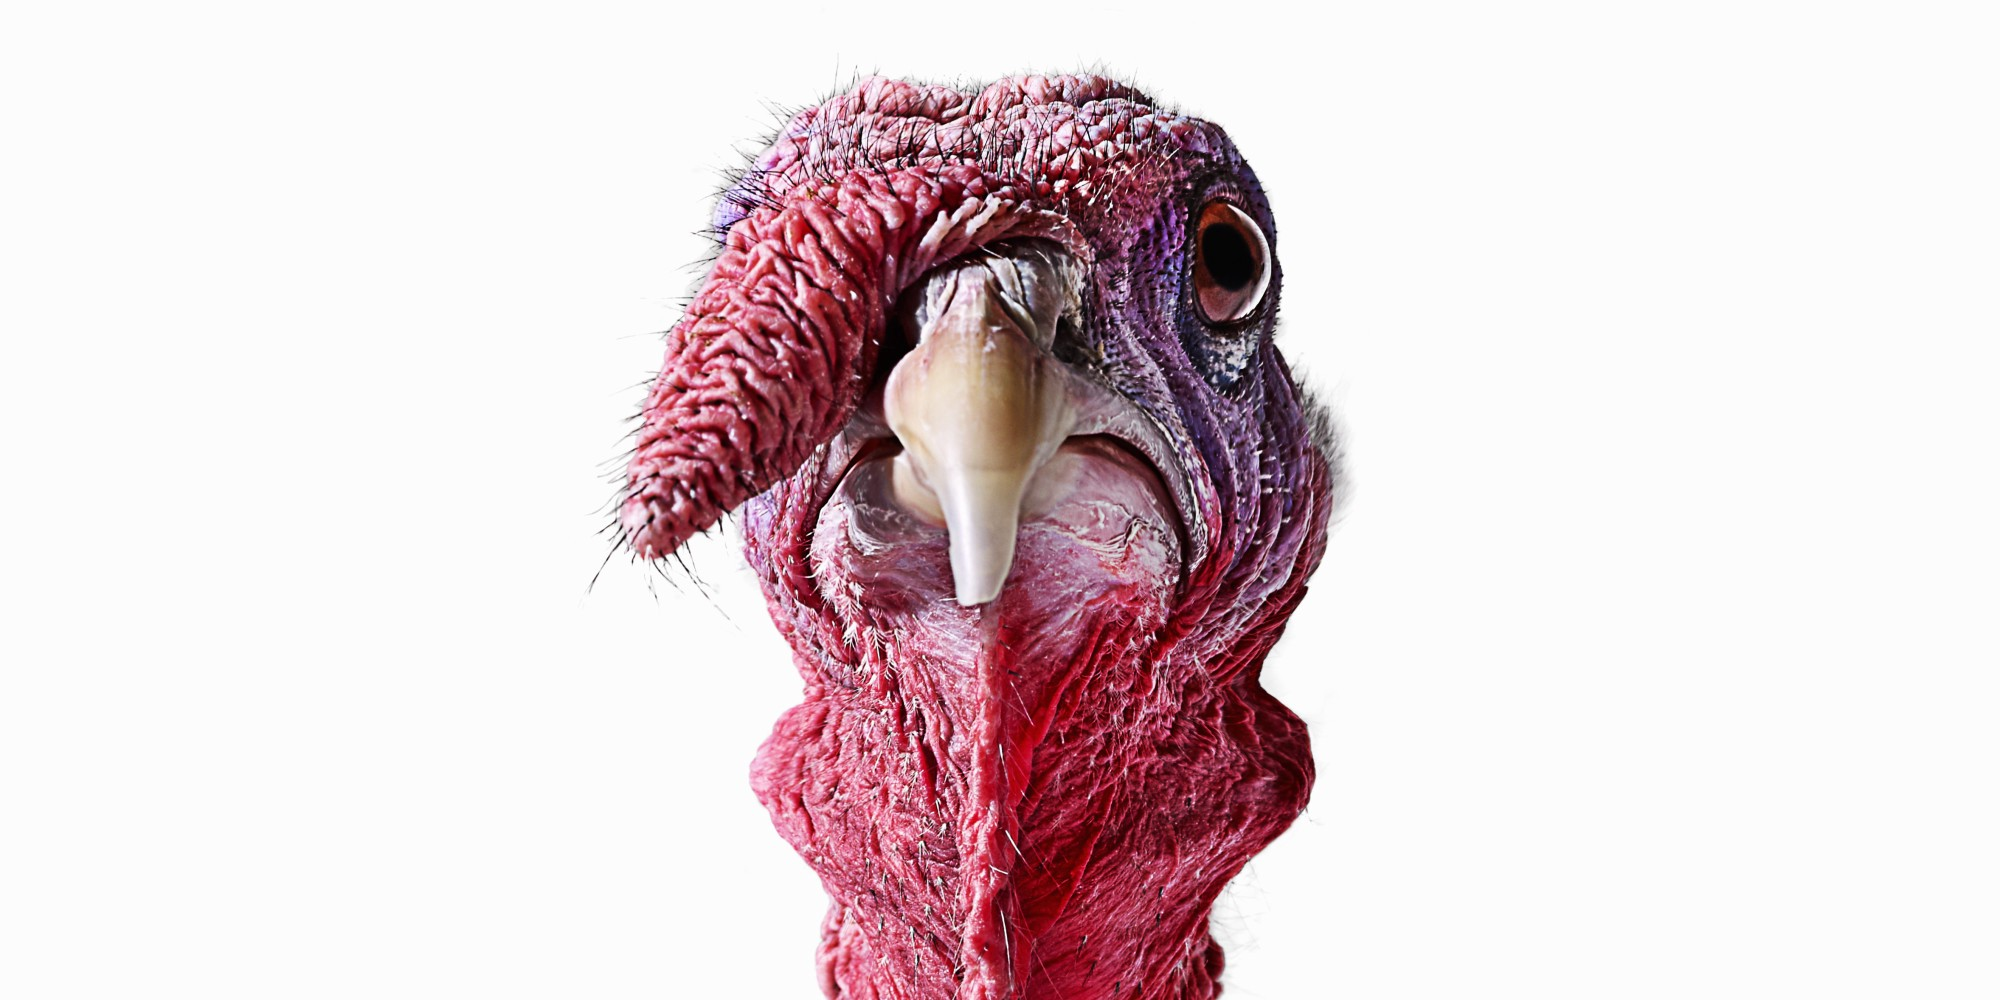 Ten Years Ago A Wild Turkey Tried To Kill Me No I Am Not Talking About The Kentucky Bourbon Or Catchy Country Ditty By Lacy J Dalton Of Same Name